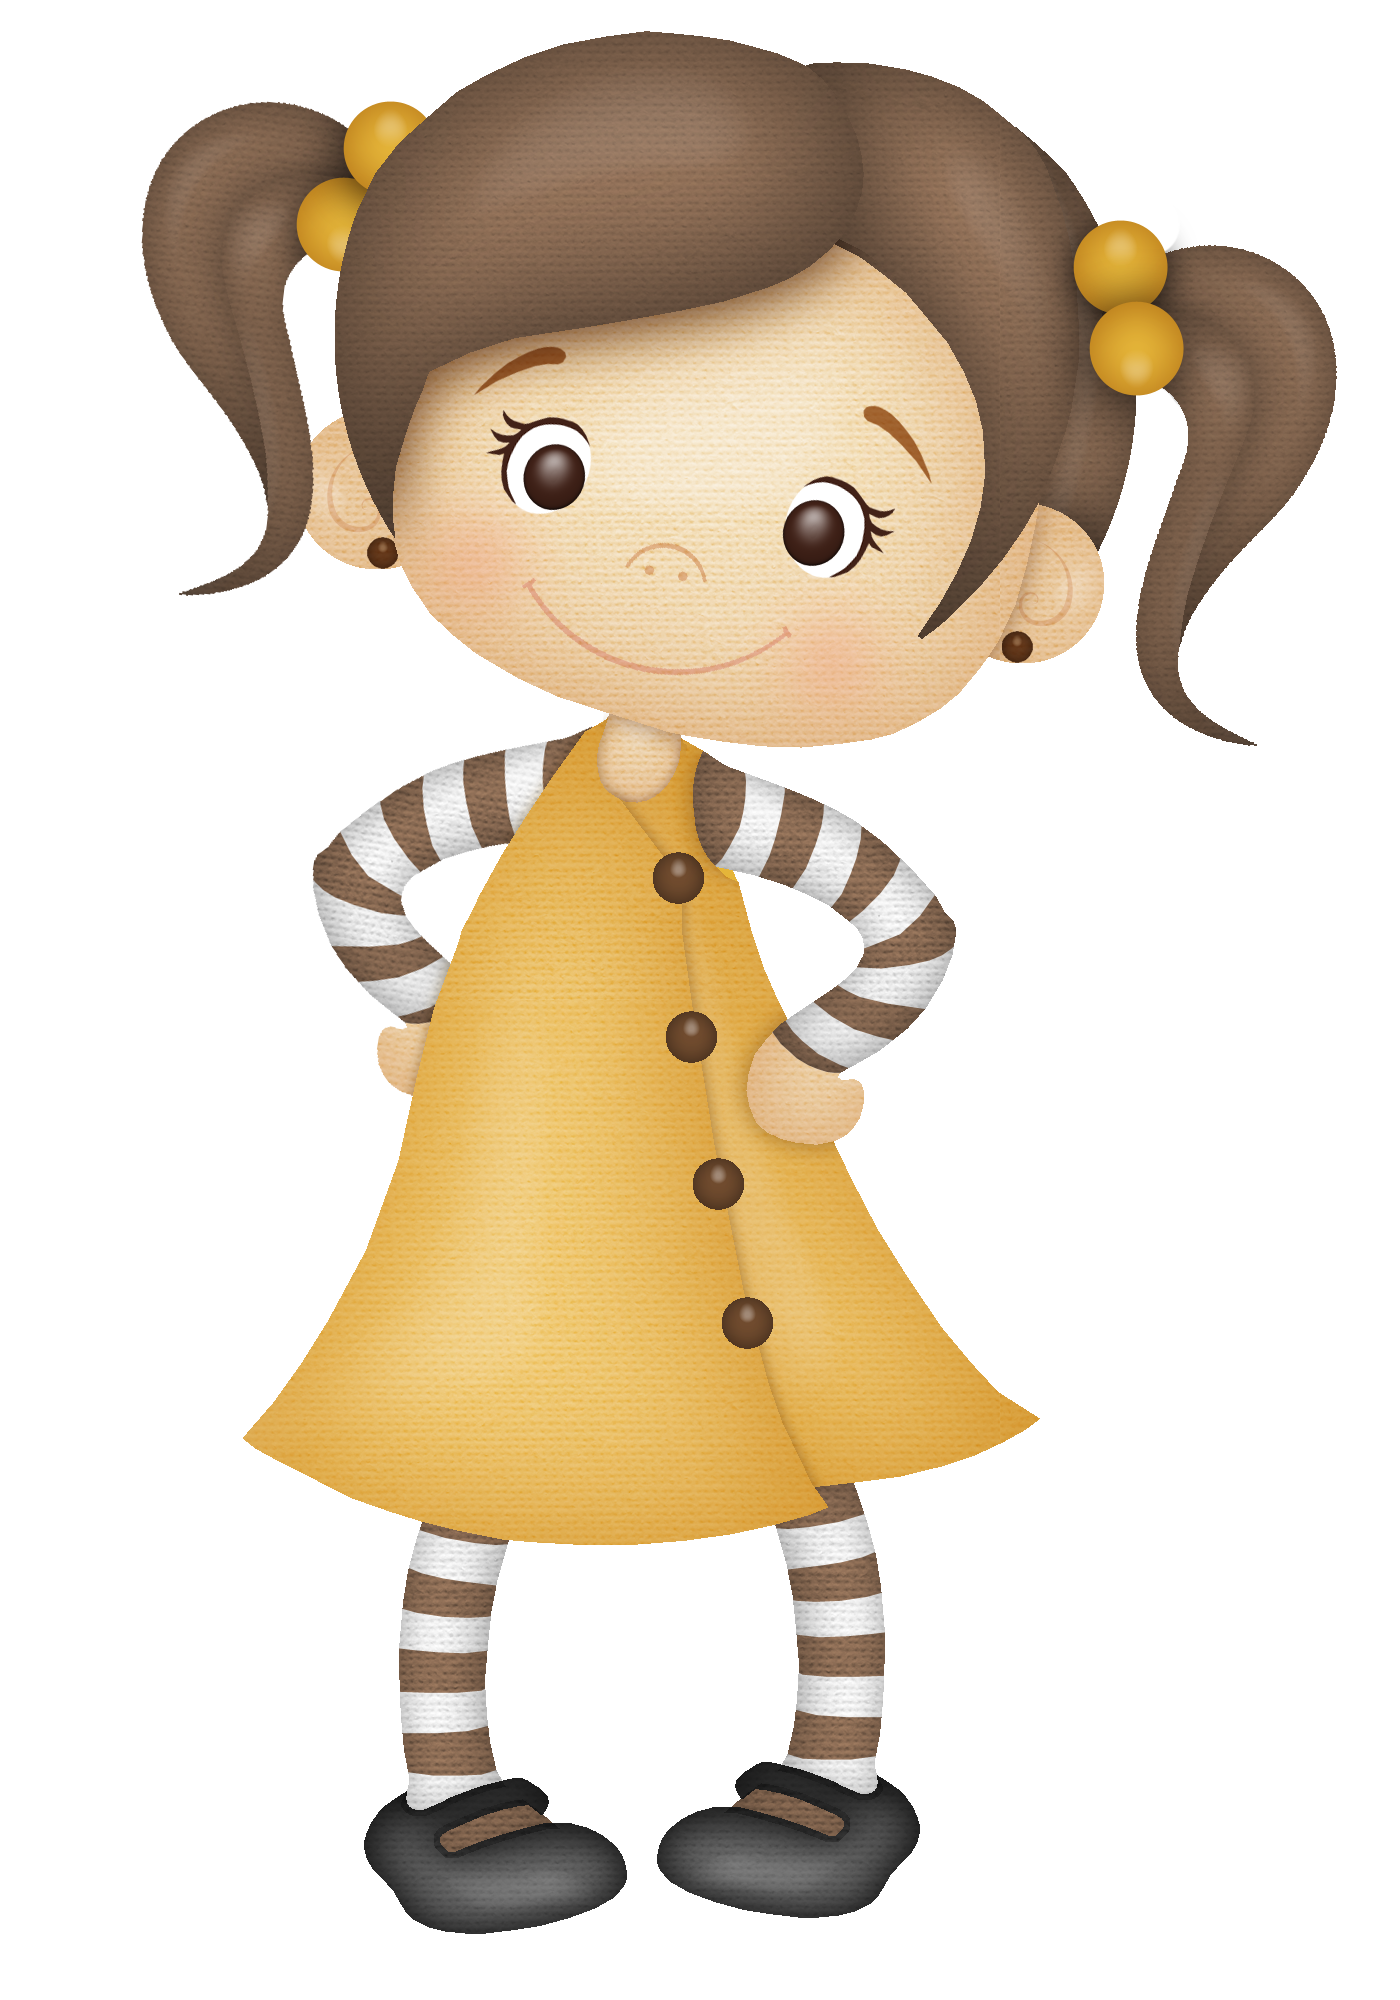 Doll clipart animated, Doll animated Transparent FREE for.